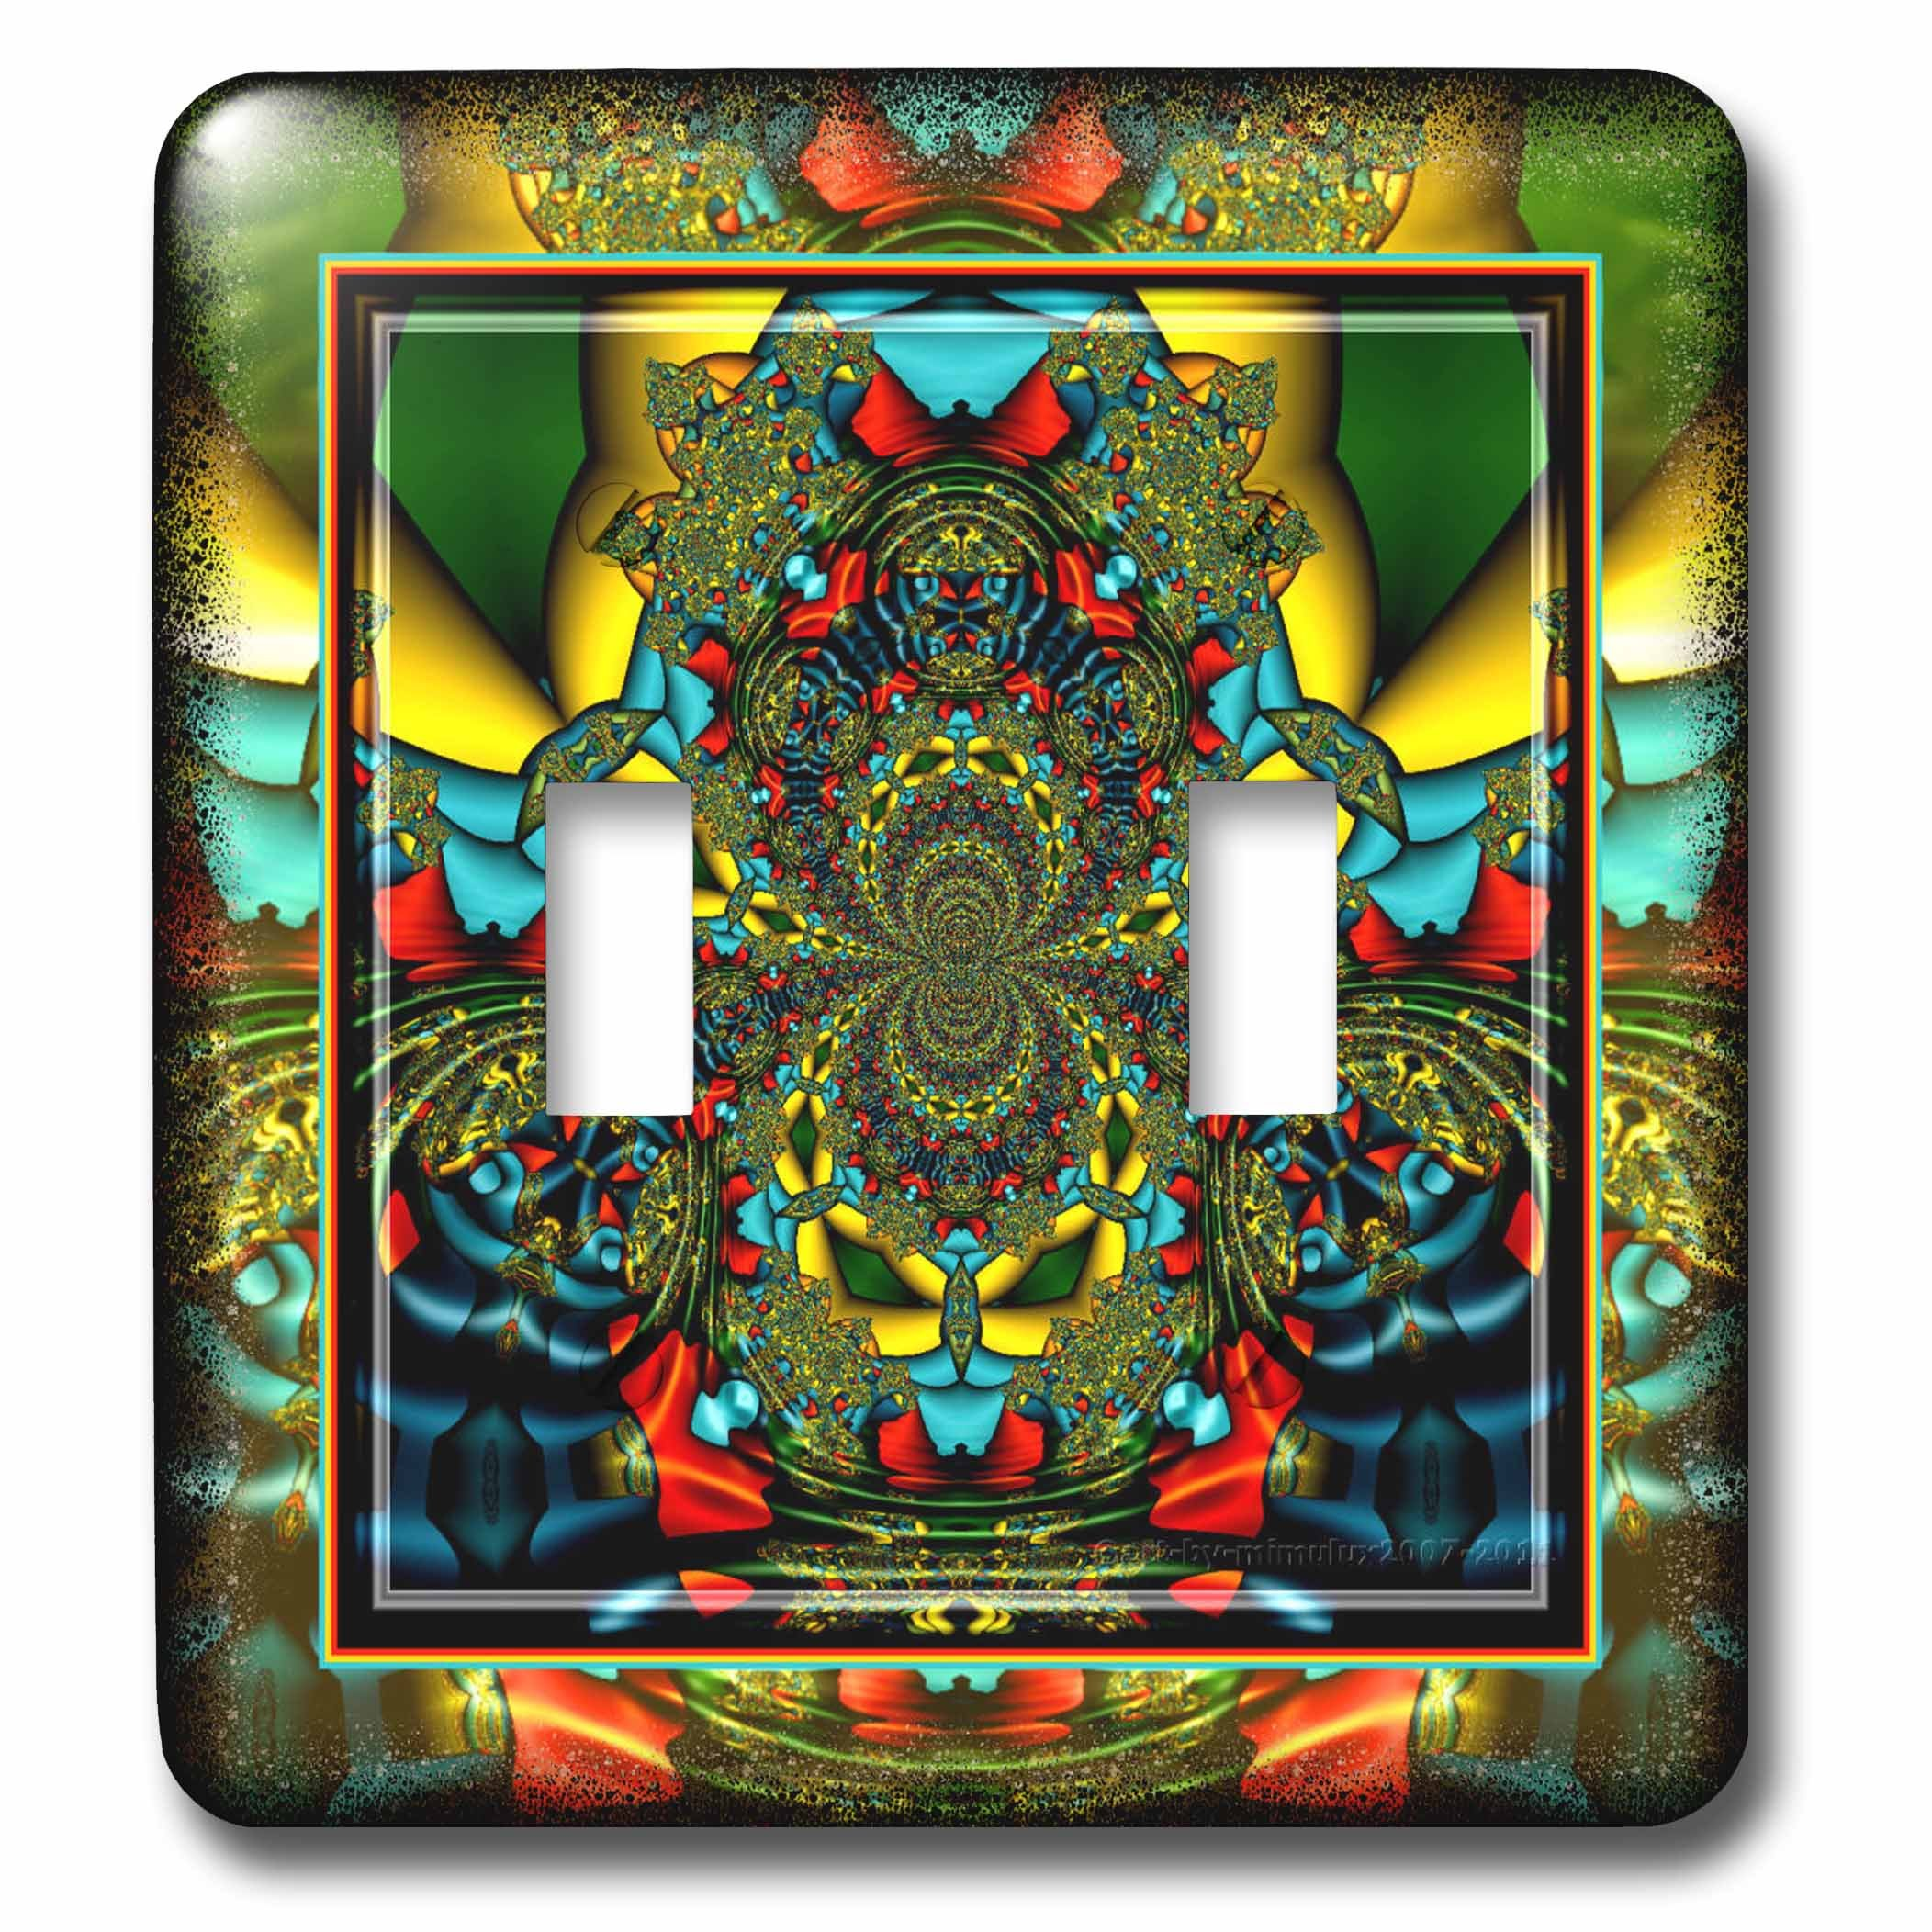 3dRose lsp_24841_2 Psychedellica 2 Hippie Flower Power Retro Fractal Psychedelic Red Yellow Blue Retro Oriental India Double Toggle Switch